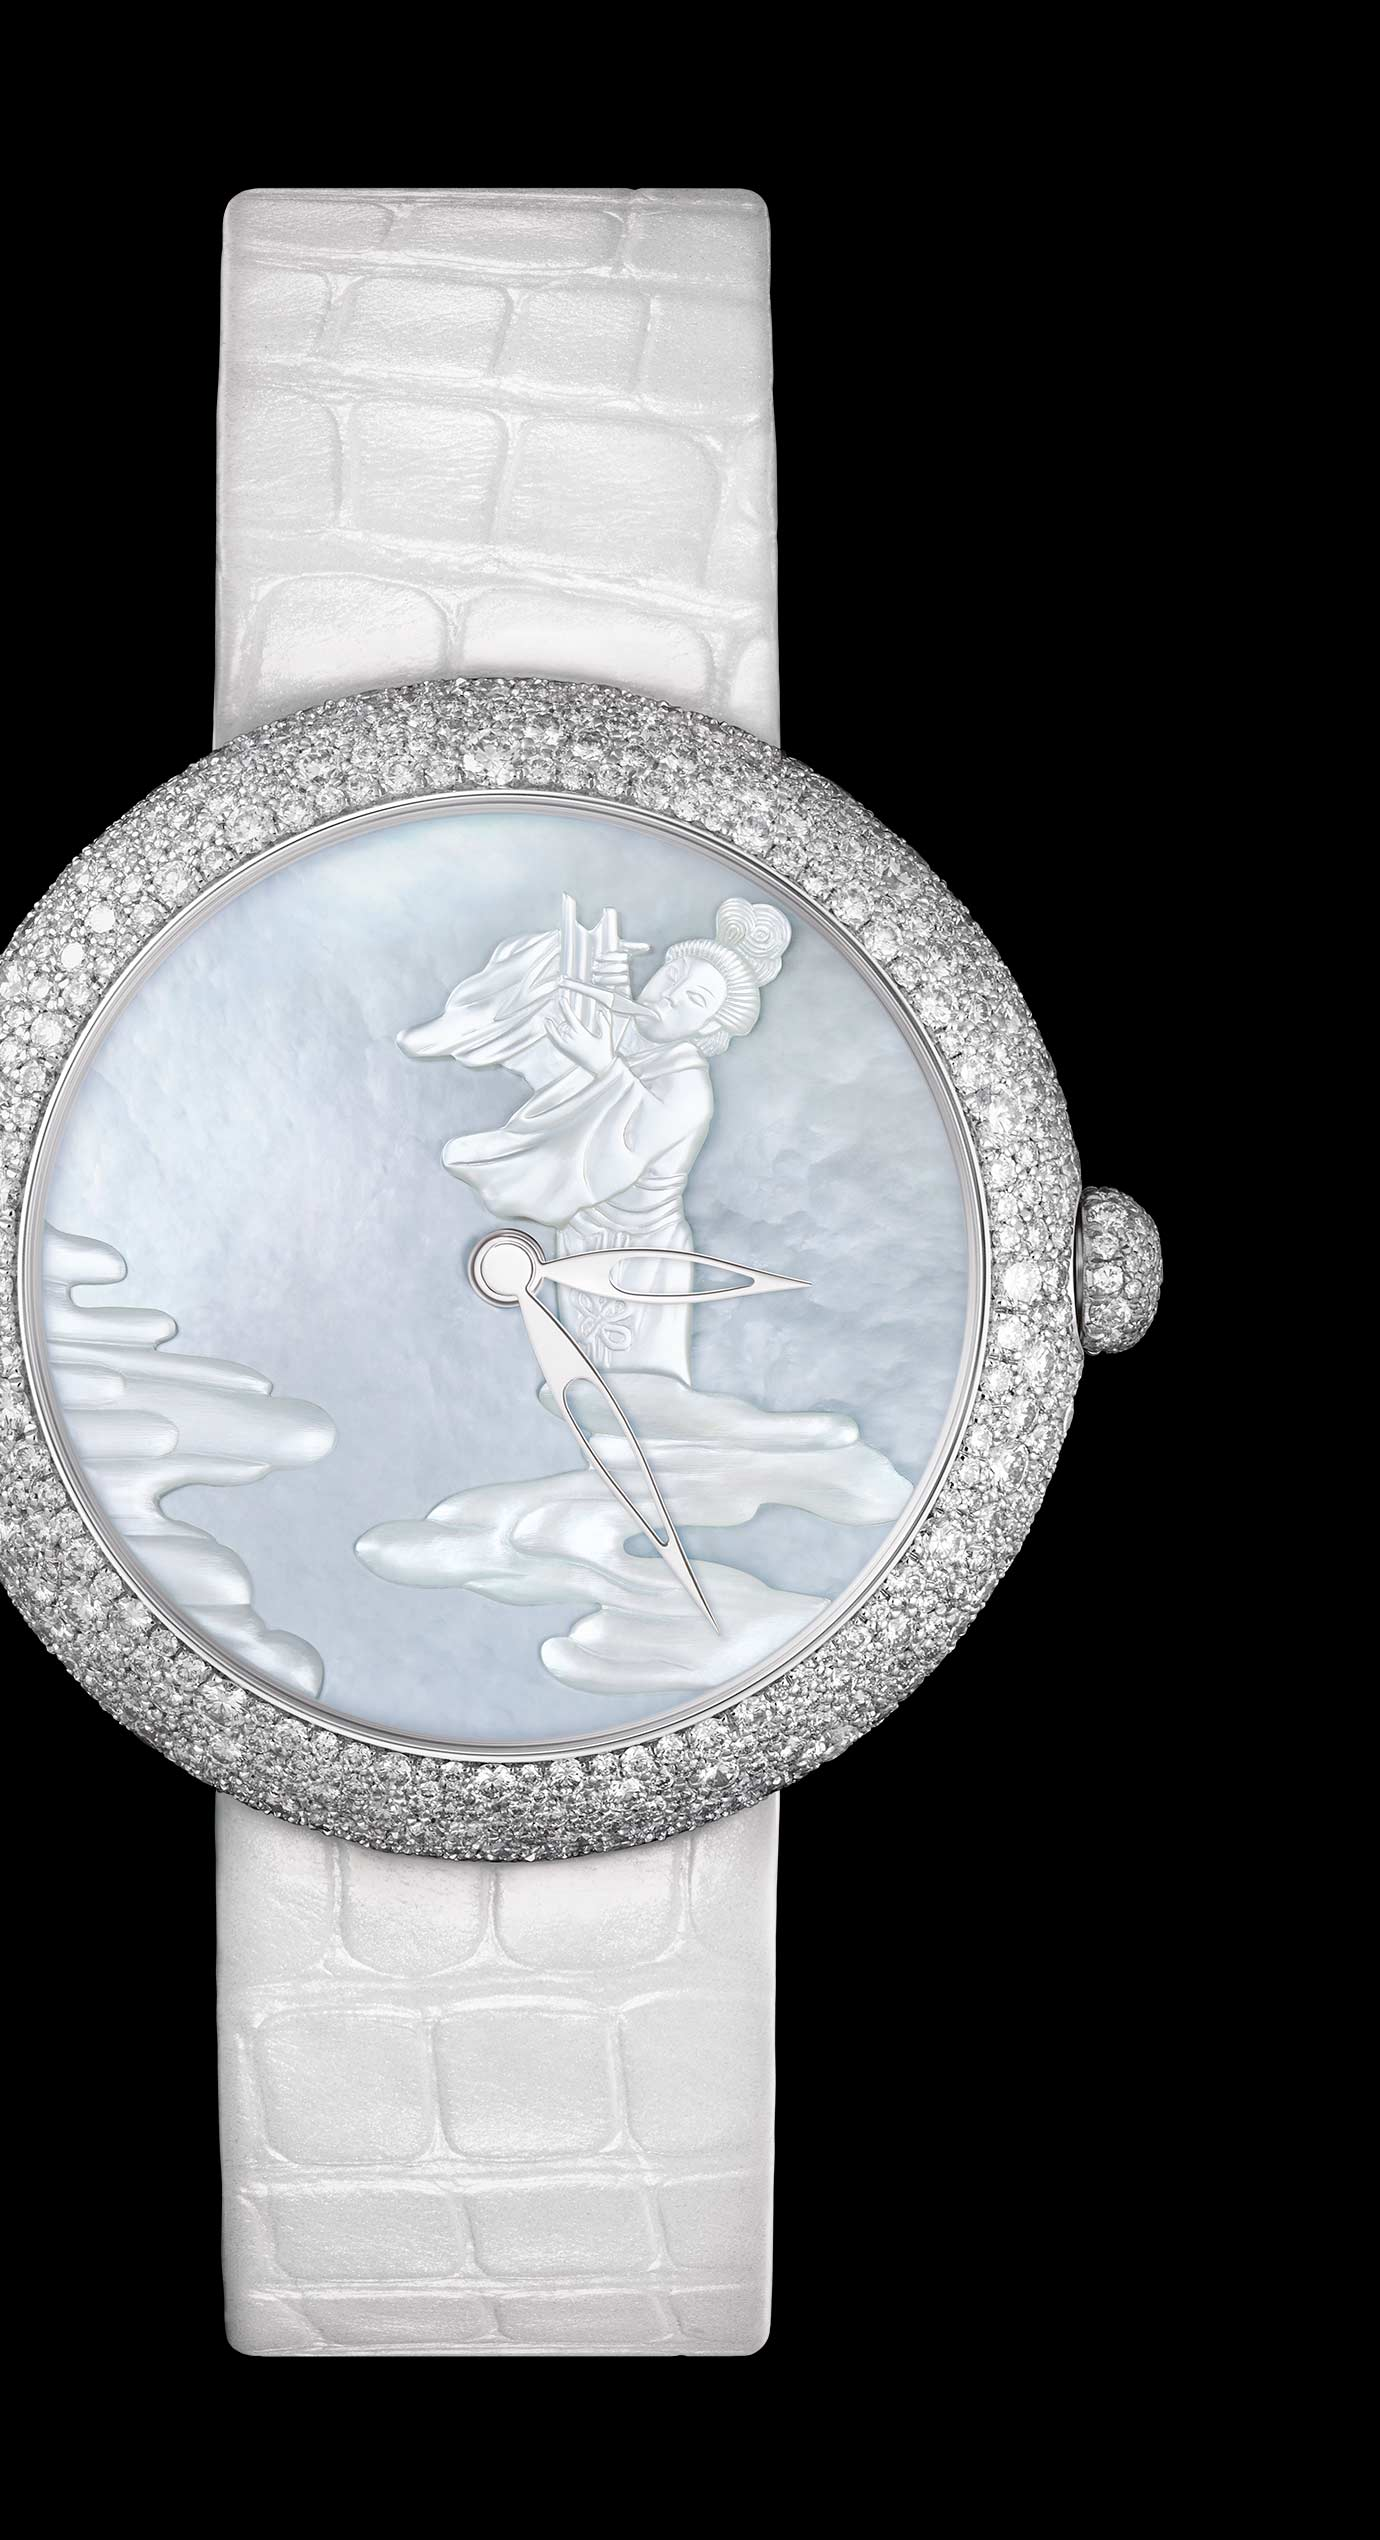 Mademoiselle Privé Coromandel 'Douce Mélodie' watch in white gold with snow set diamonds. Miniatures produced in Grand Feu enamel according to the Geneva technique and carved mother-of-pearl. - Enlarged view